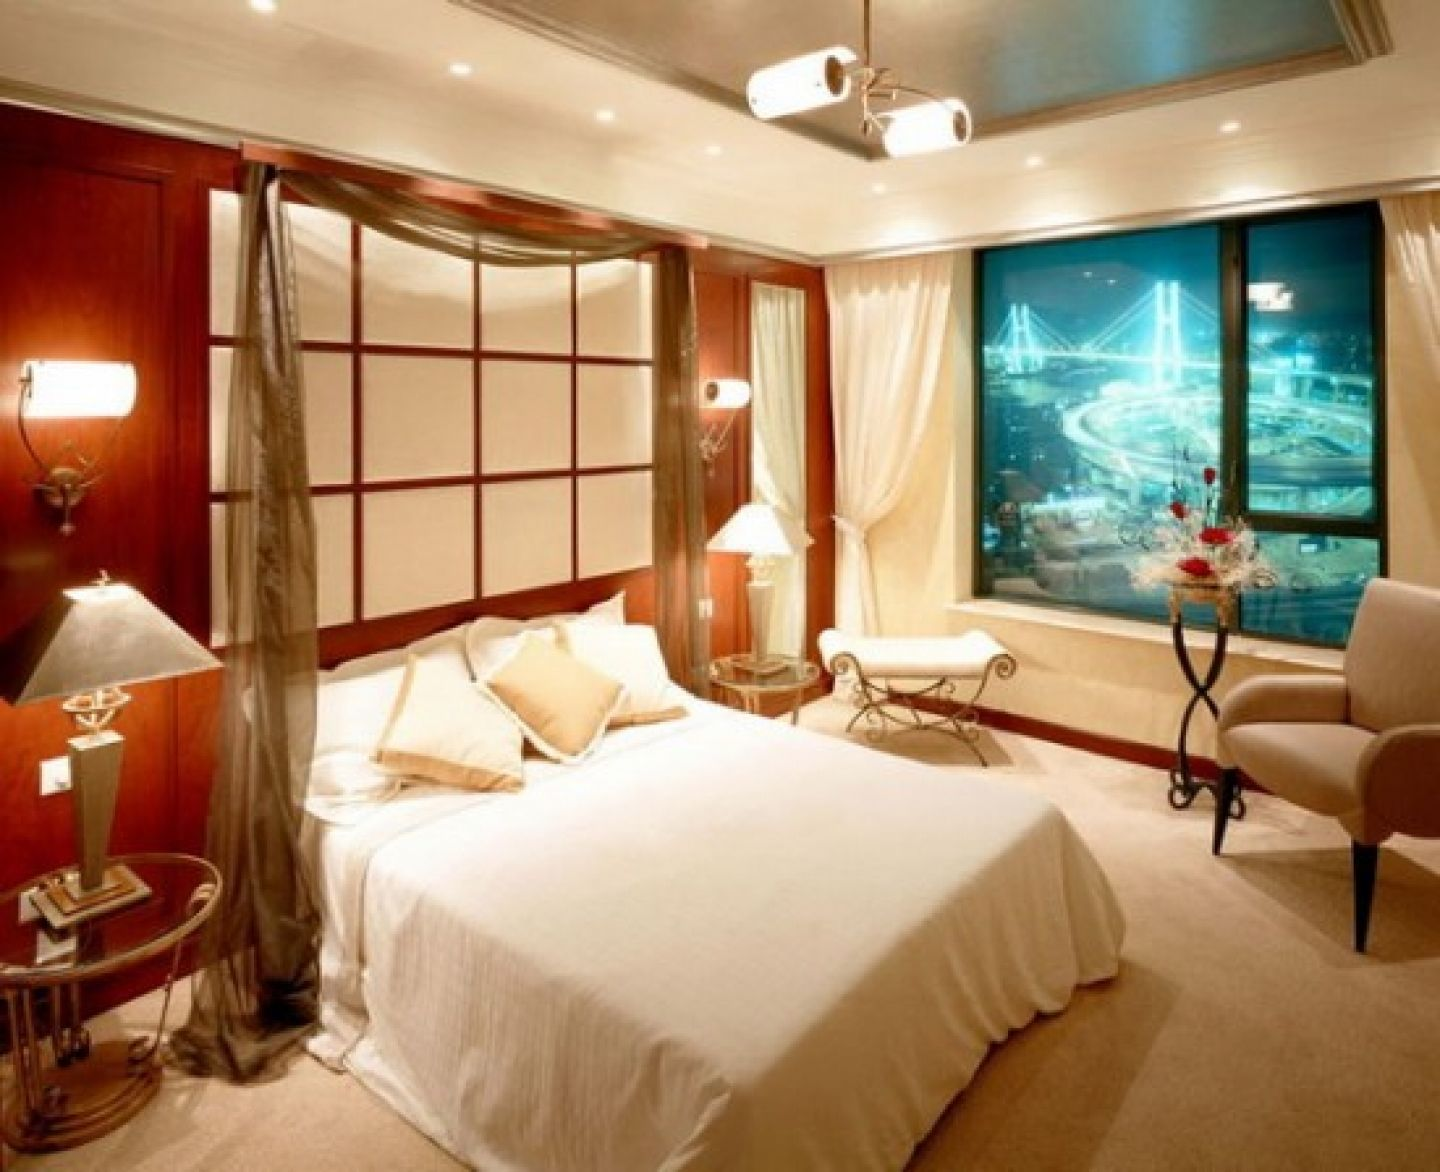 Ordinaire Hot Bedroom Decorating Ideas For Couples Luxury Lighting